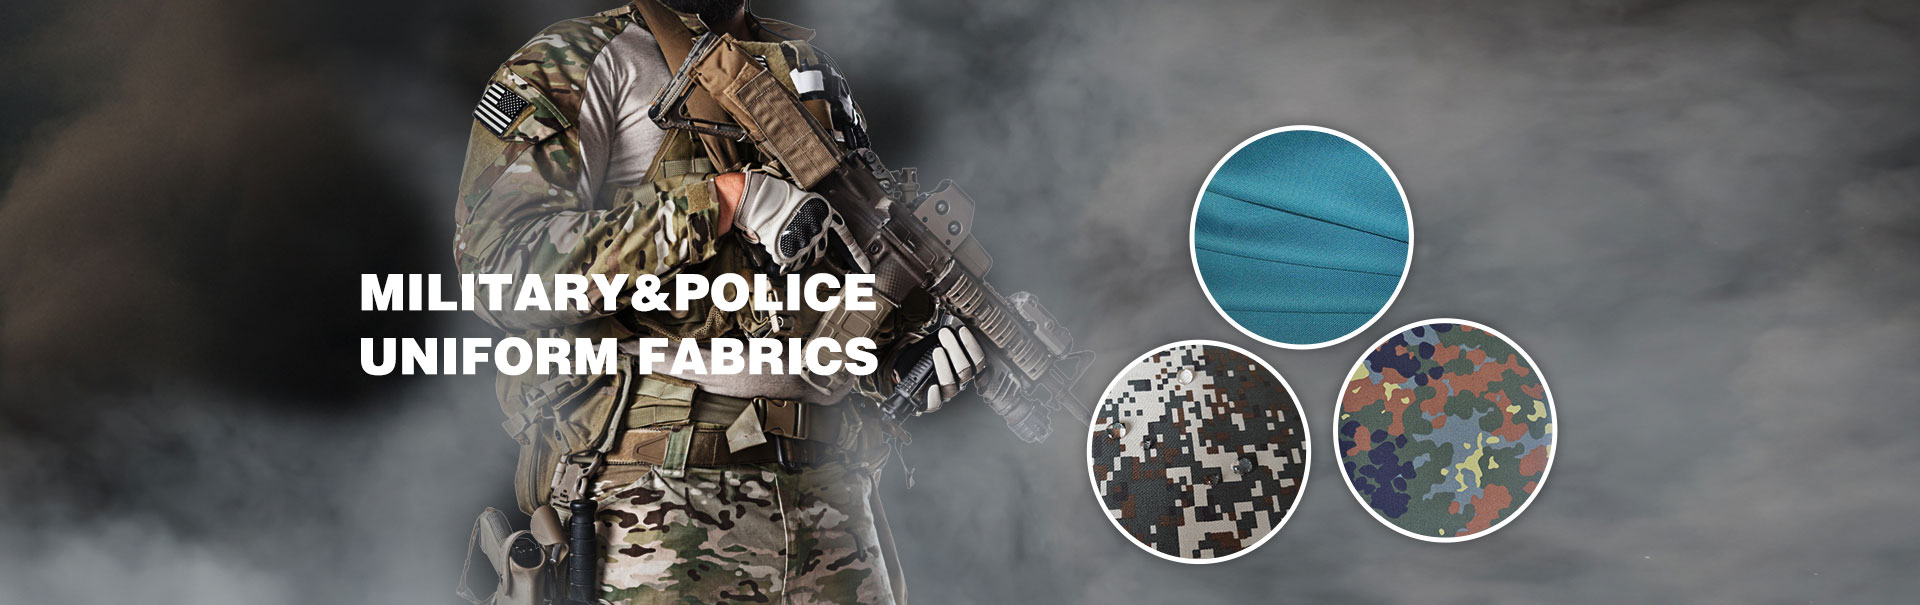 Military&Police Uniform Fabrics Factory